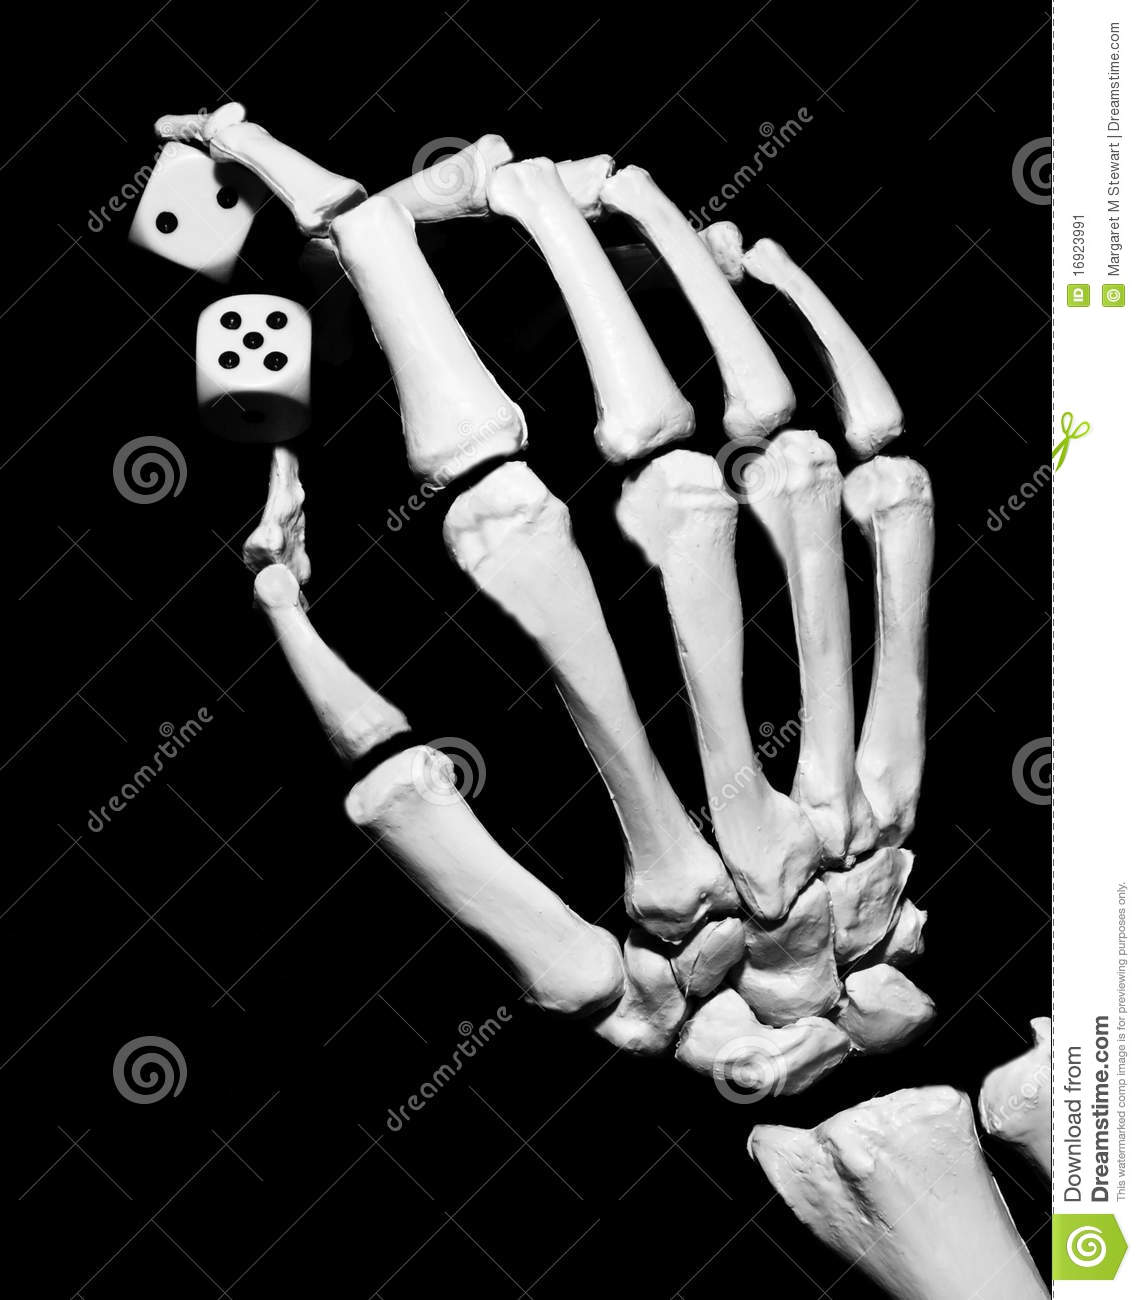 More similar stock images of ` Skeleton hand with dice `